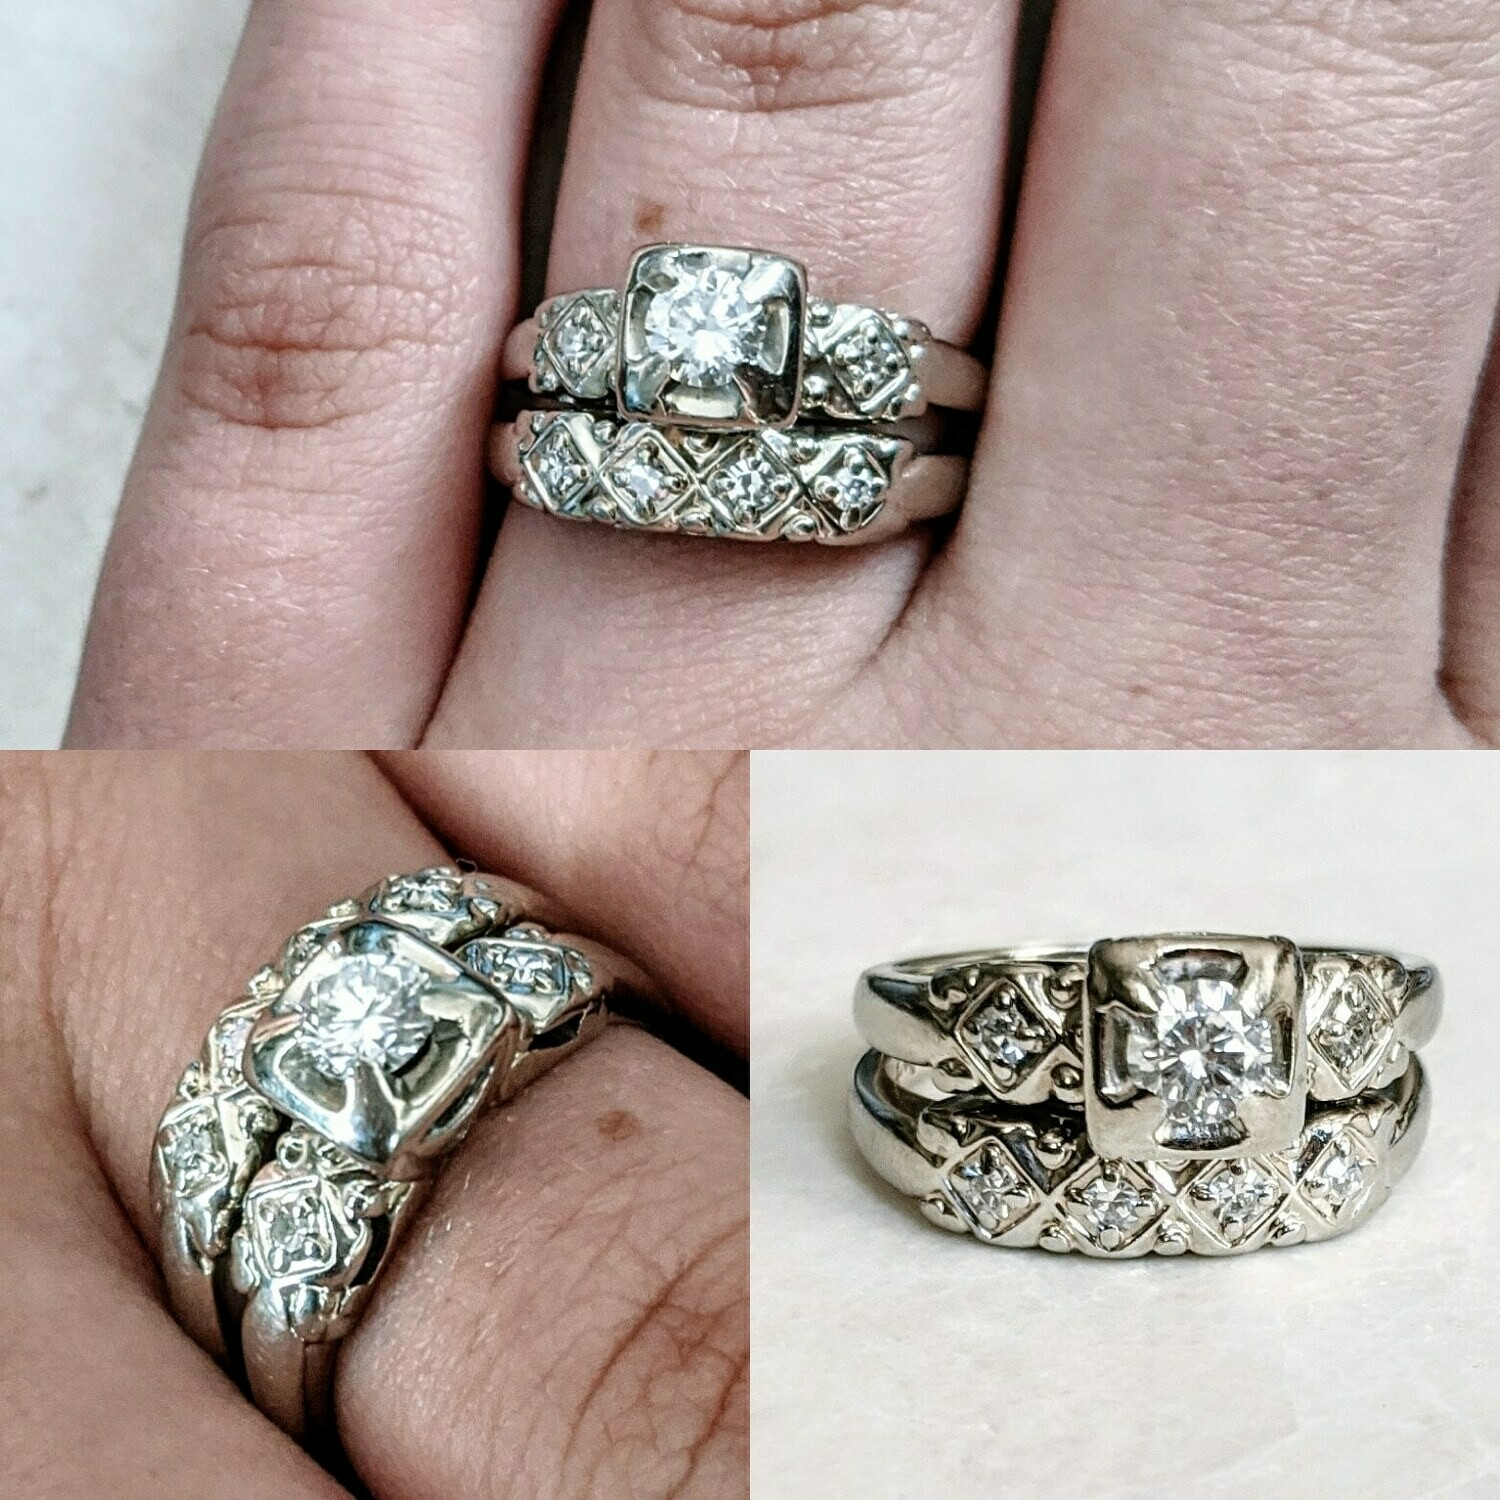 Authentic Vintage 1950s Diamond Wedding Set in 14k White Gold, Size 5.25